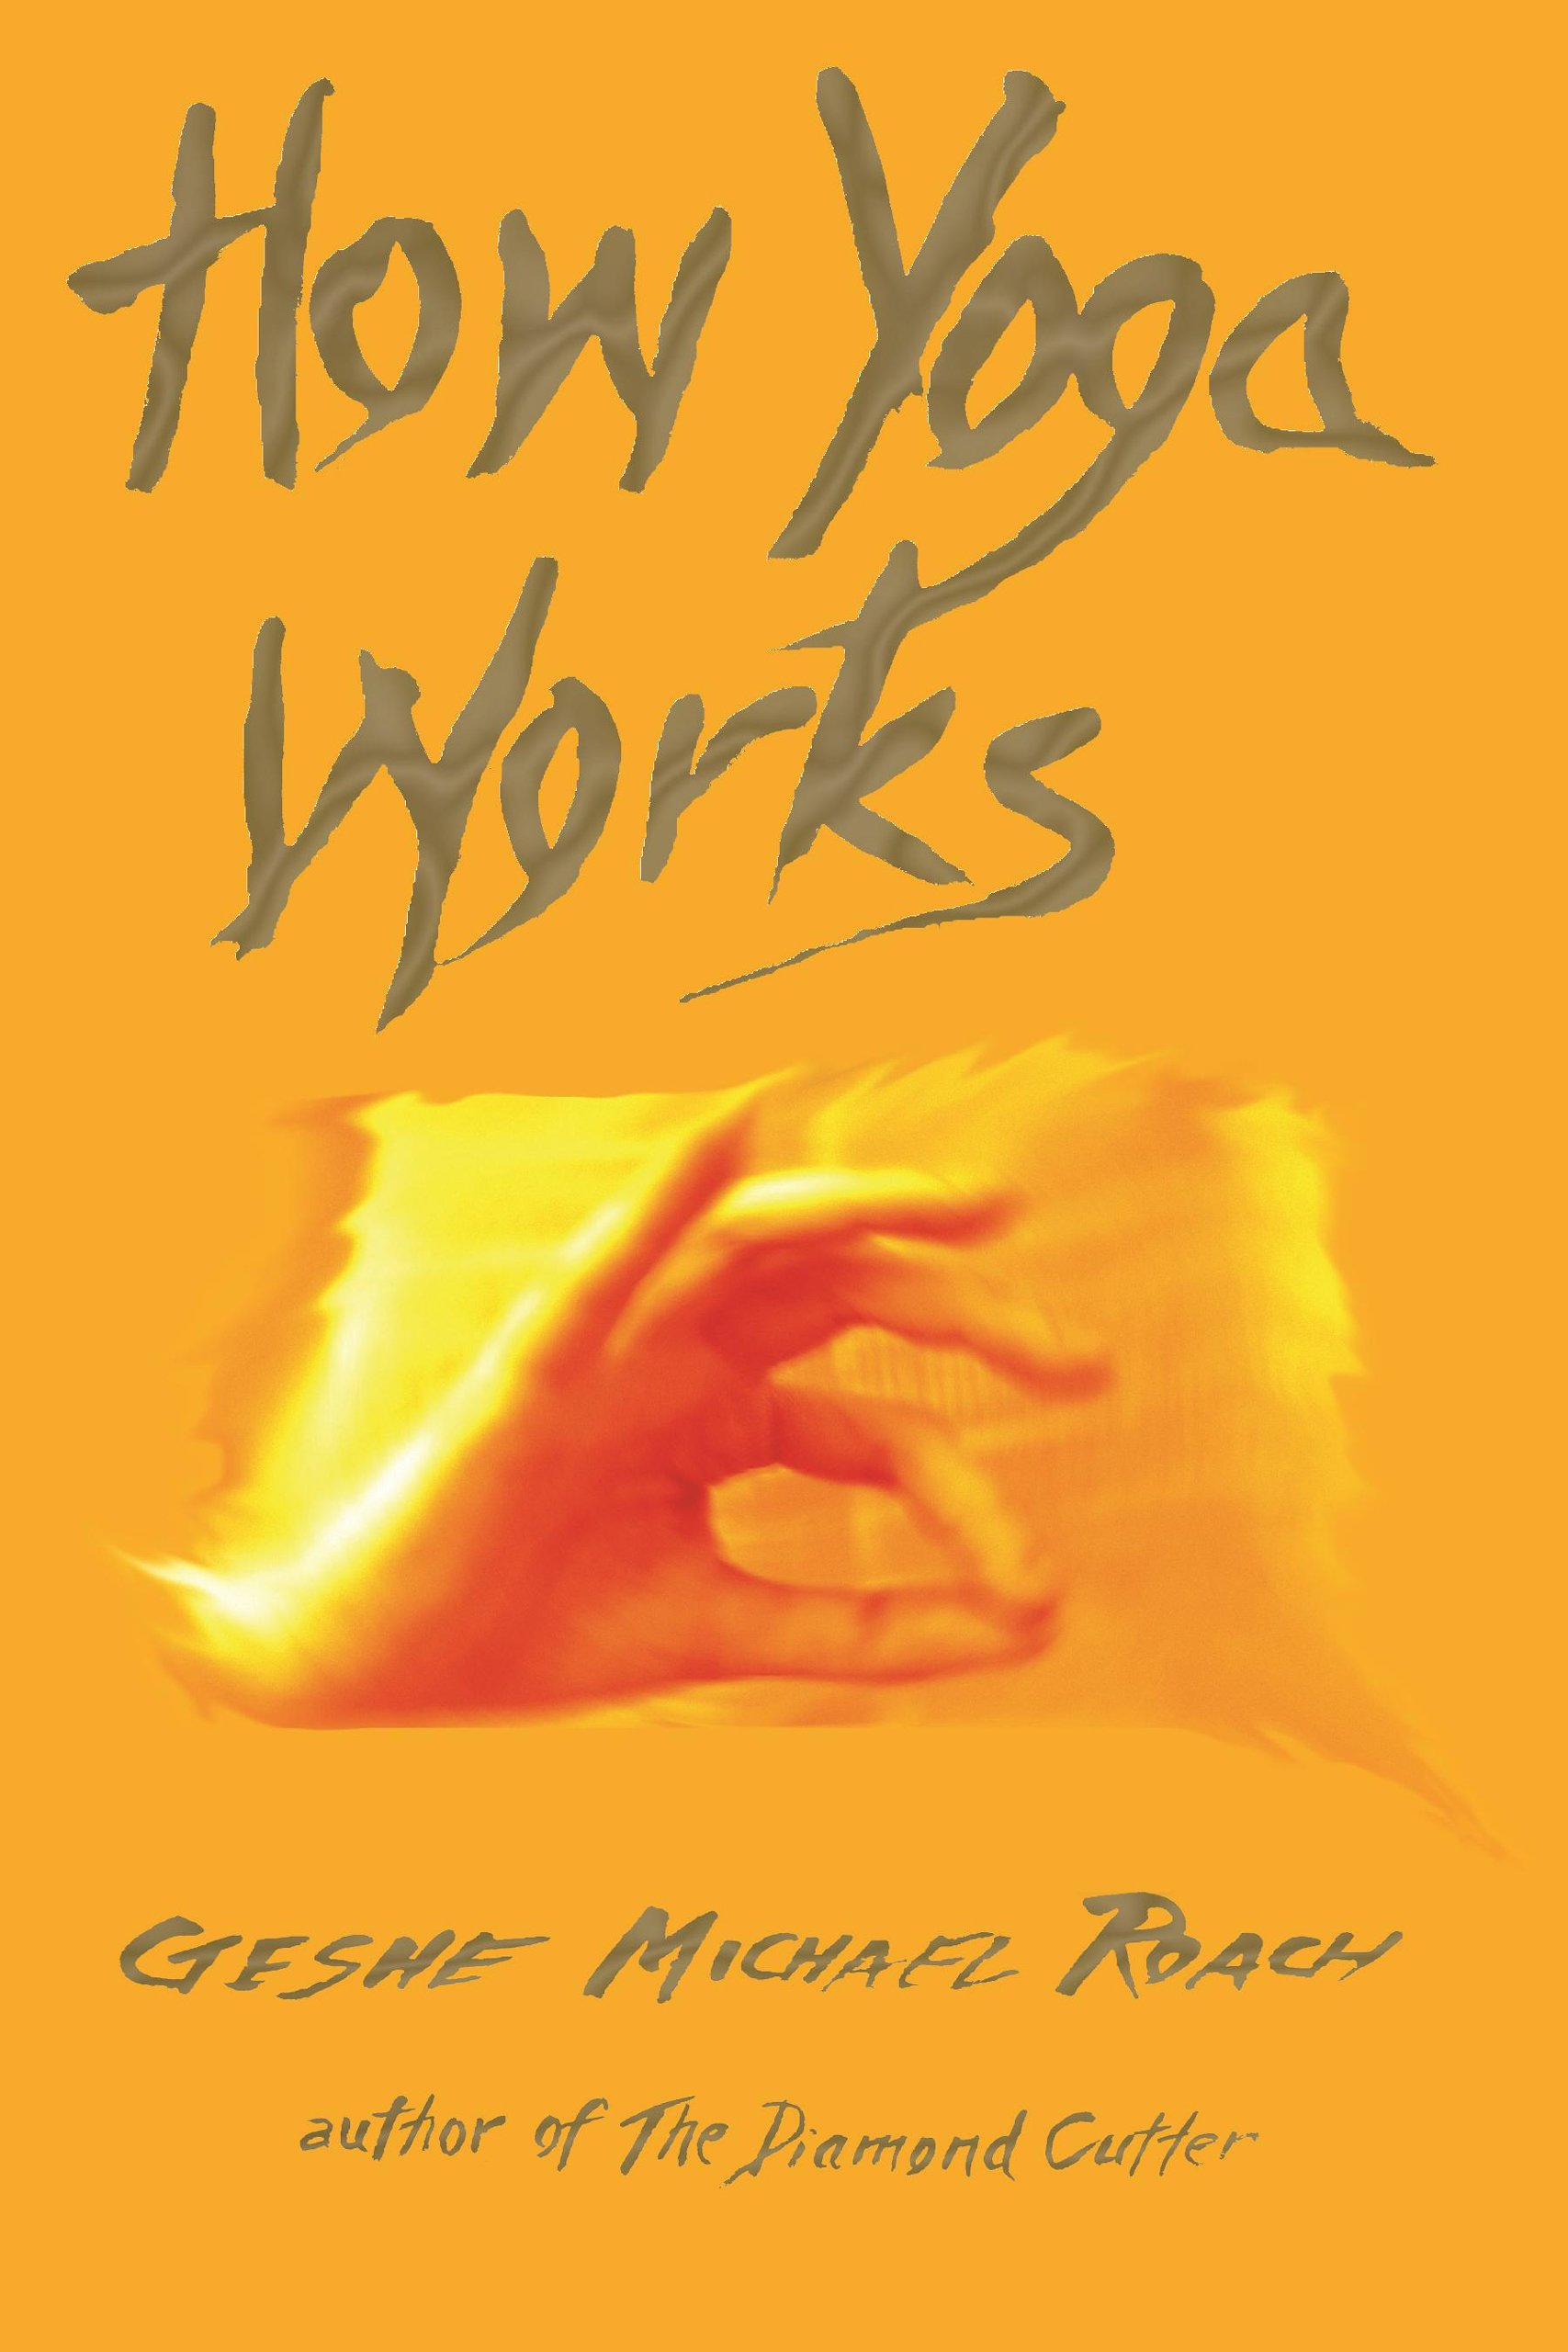 Image result for How Yoga Works by Michael Roach